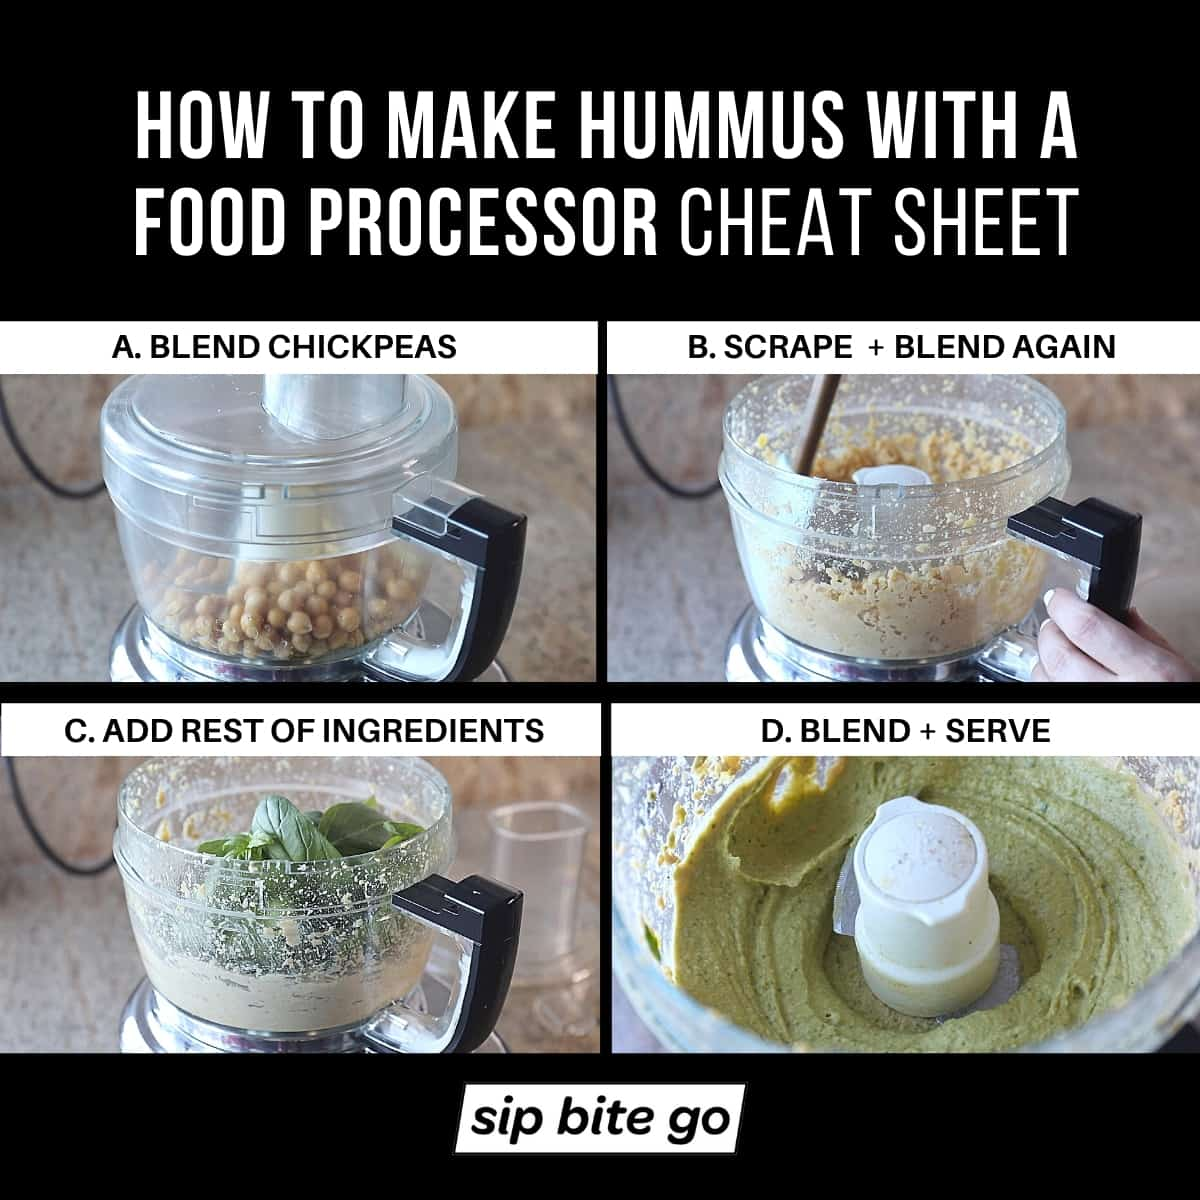 Infographic demonstrating how to make hummus with a food processor